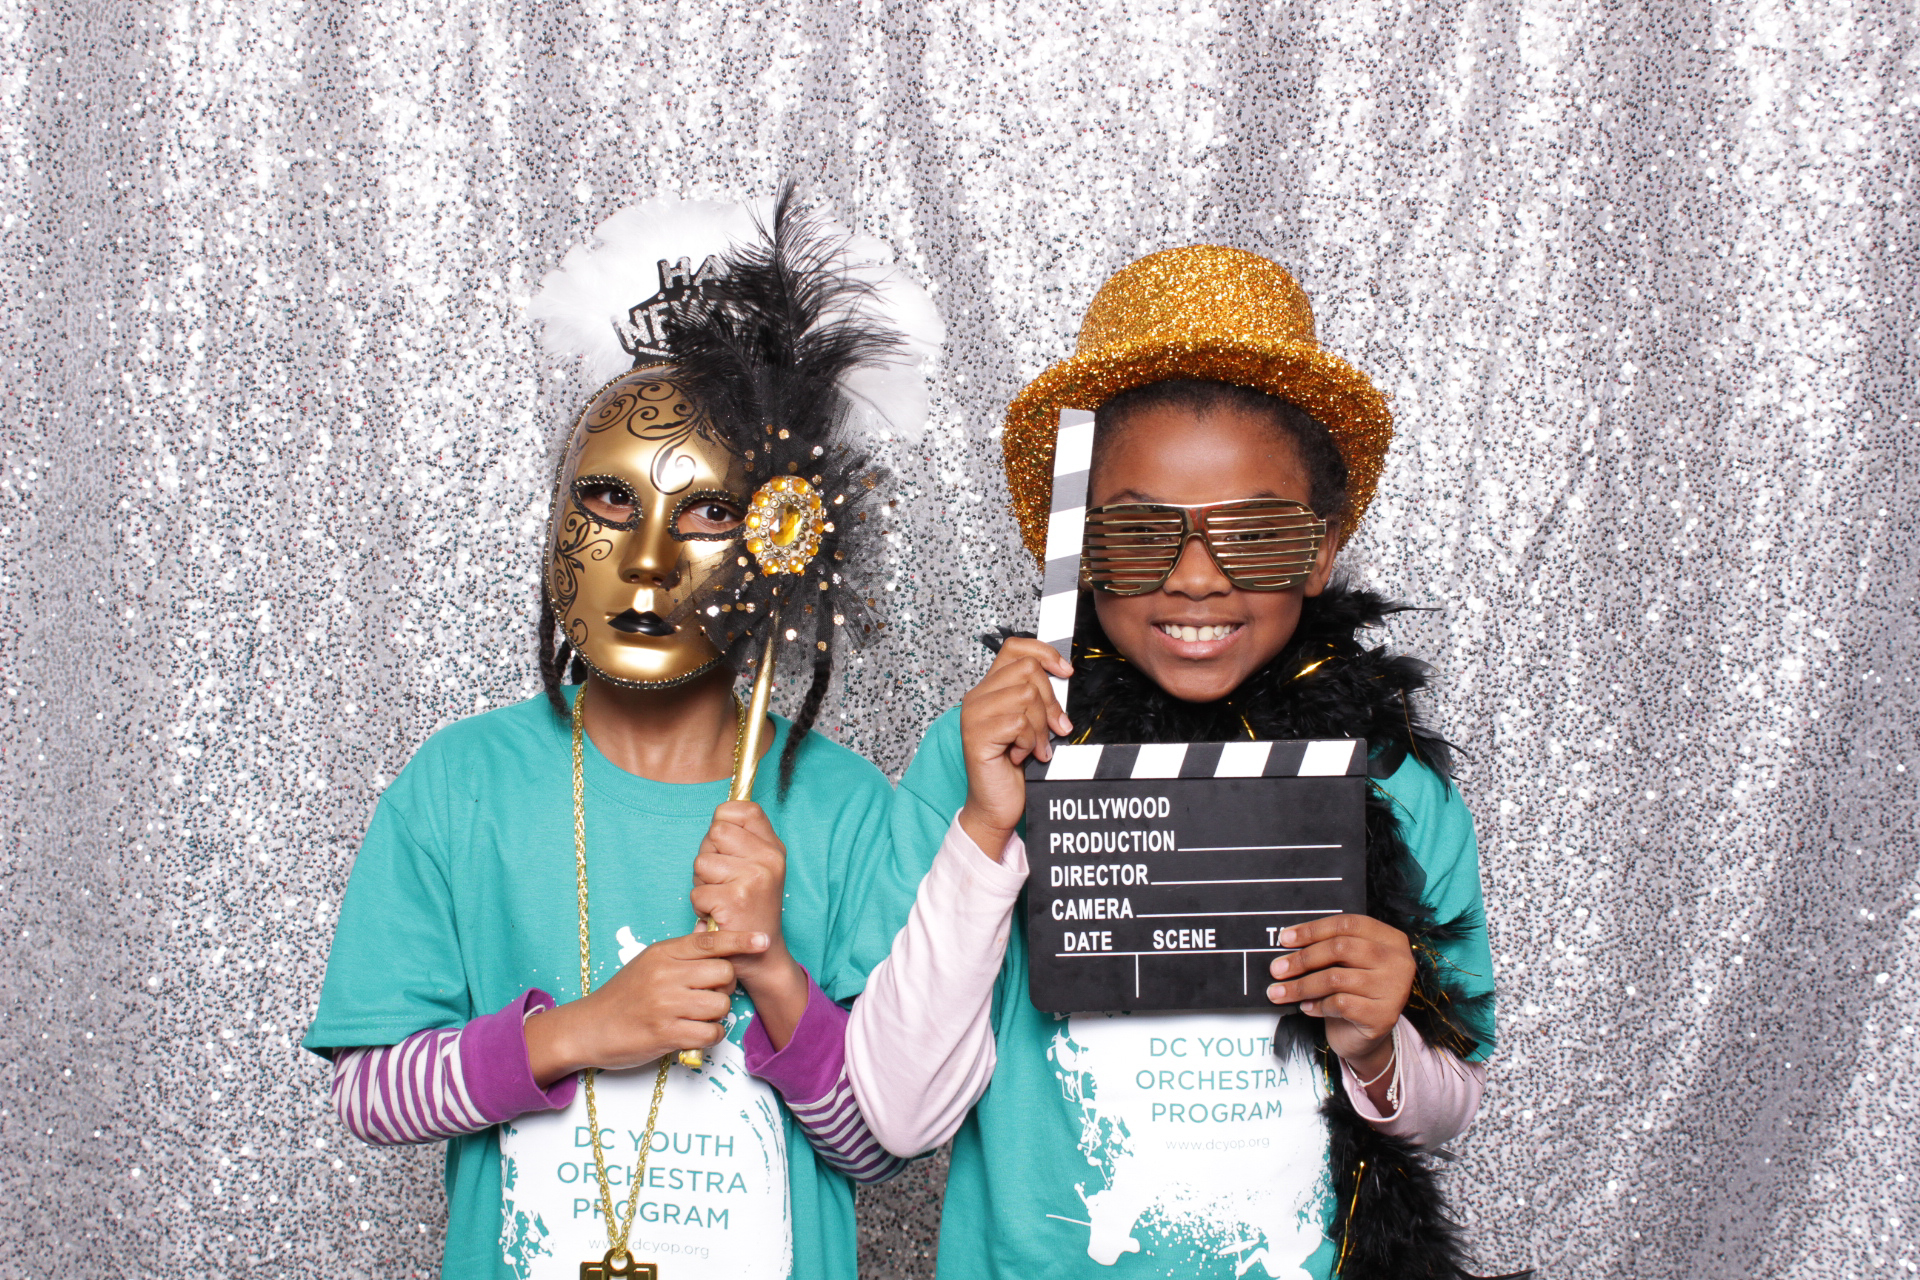 DCYOP SPRINGFEST | HOT PINK PHOTO BOOTH